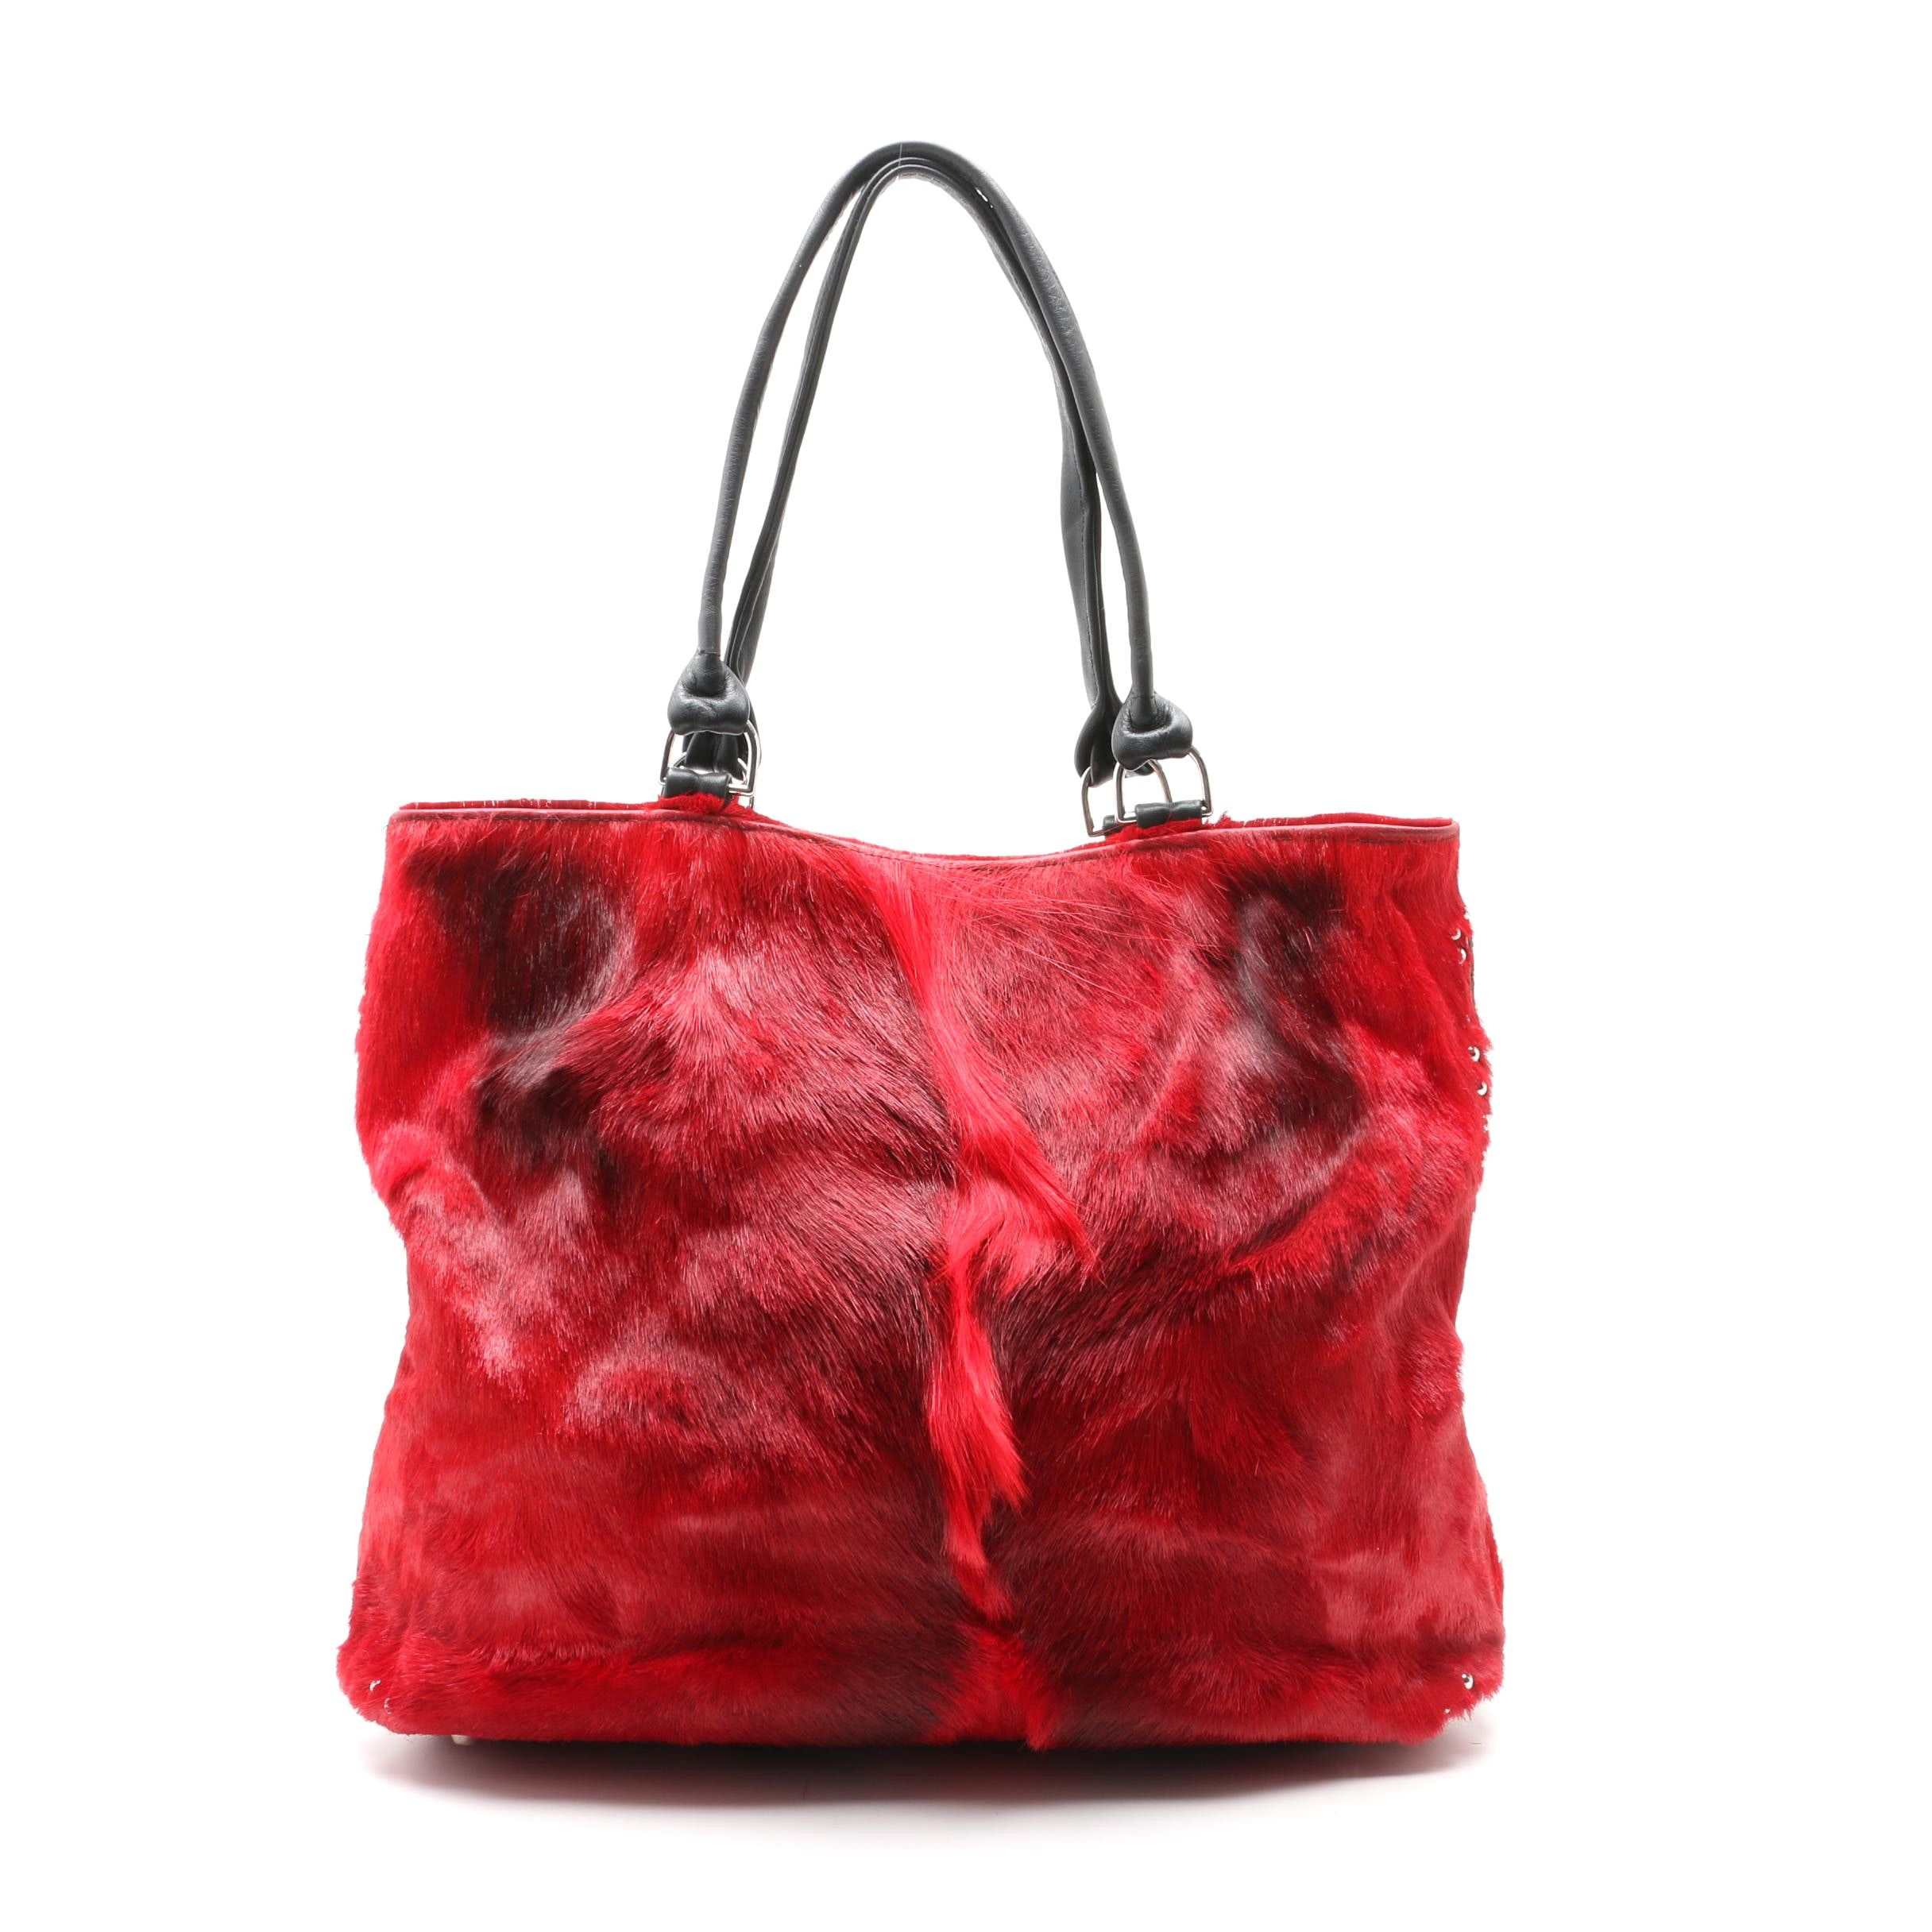 King Ranch Dyed Red Cowhide and Black Leather Studded Tote Bag